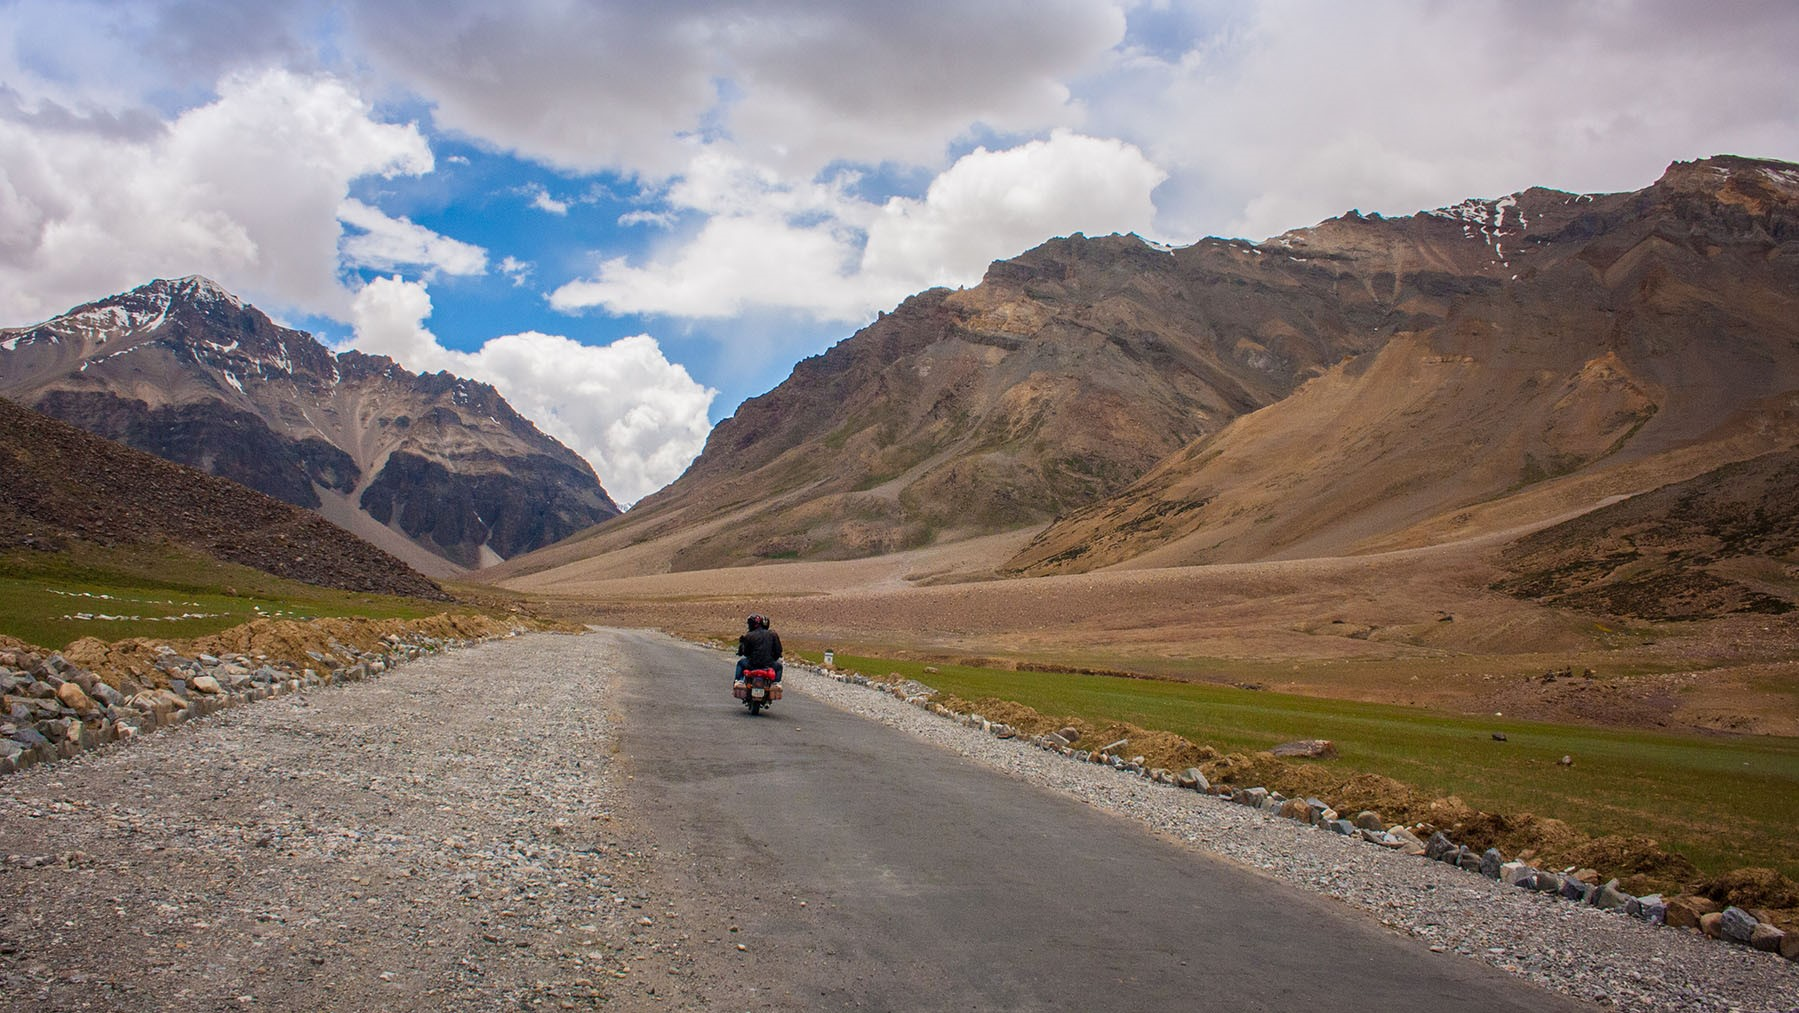 manali-to-leh-road-trip-route